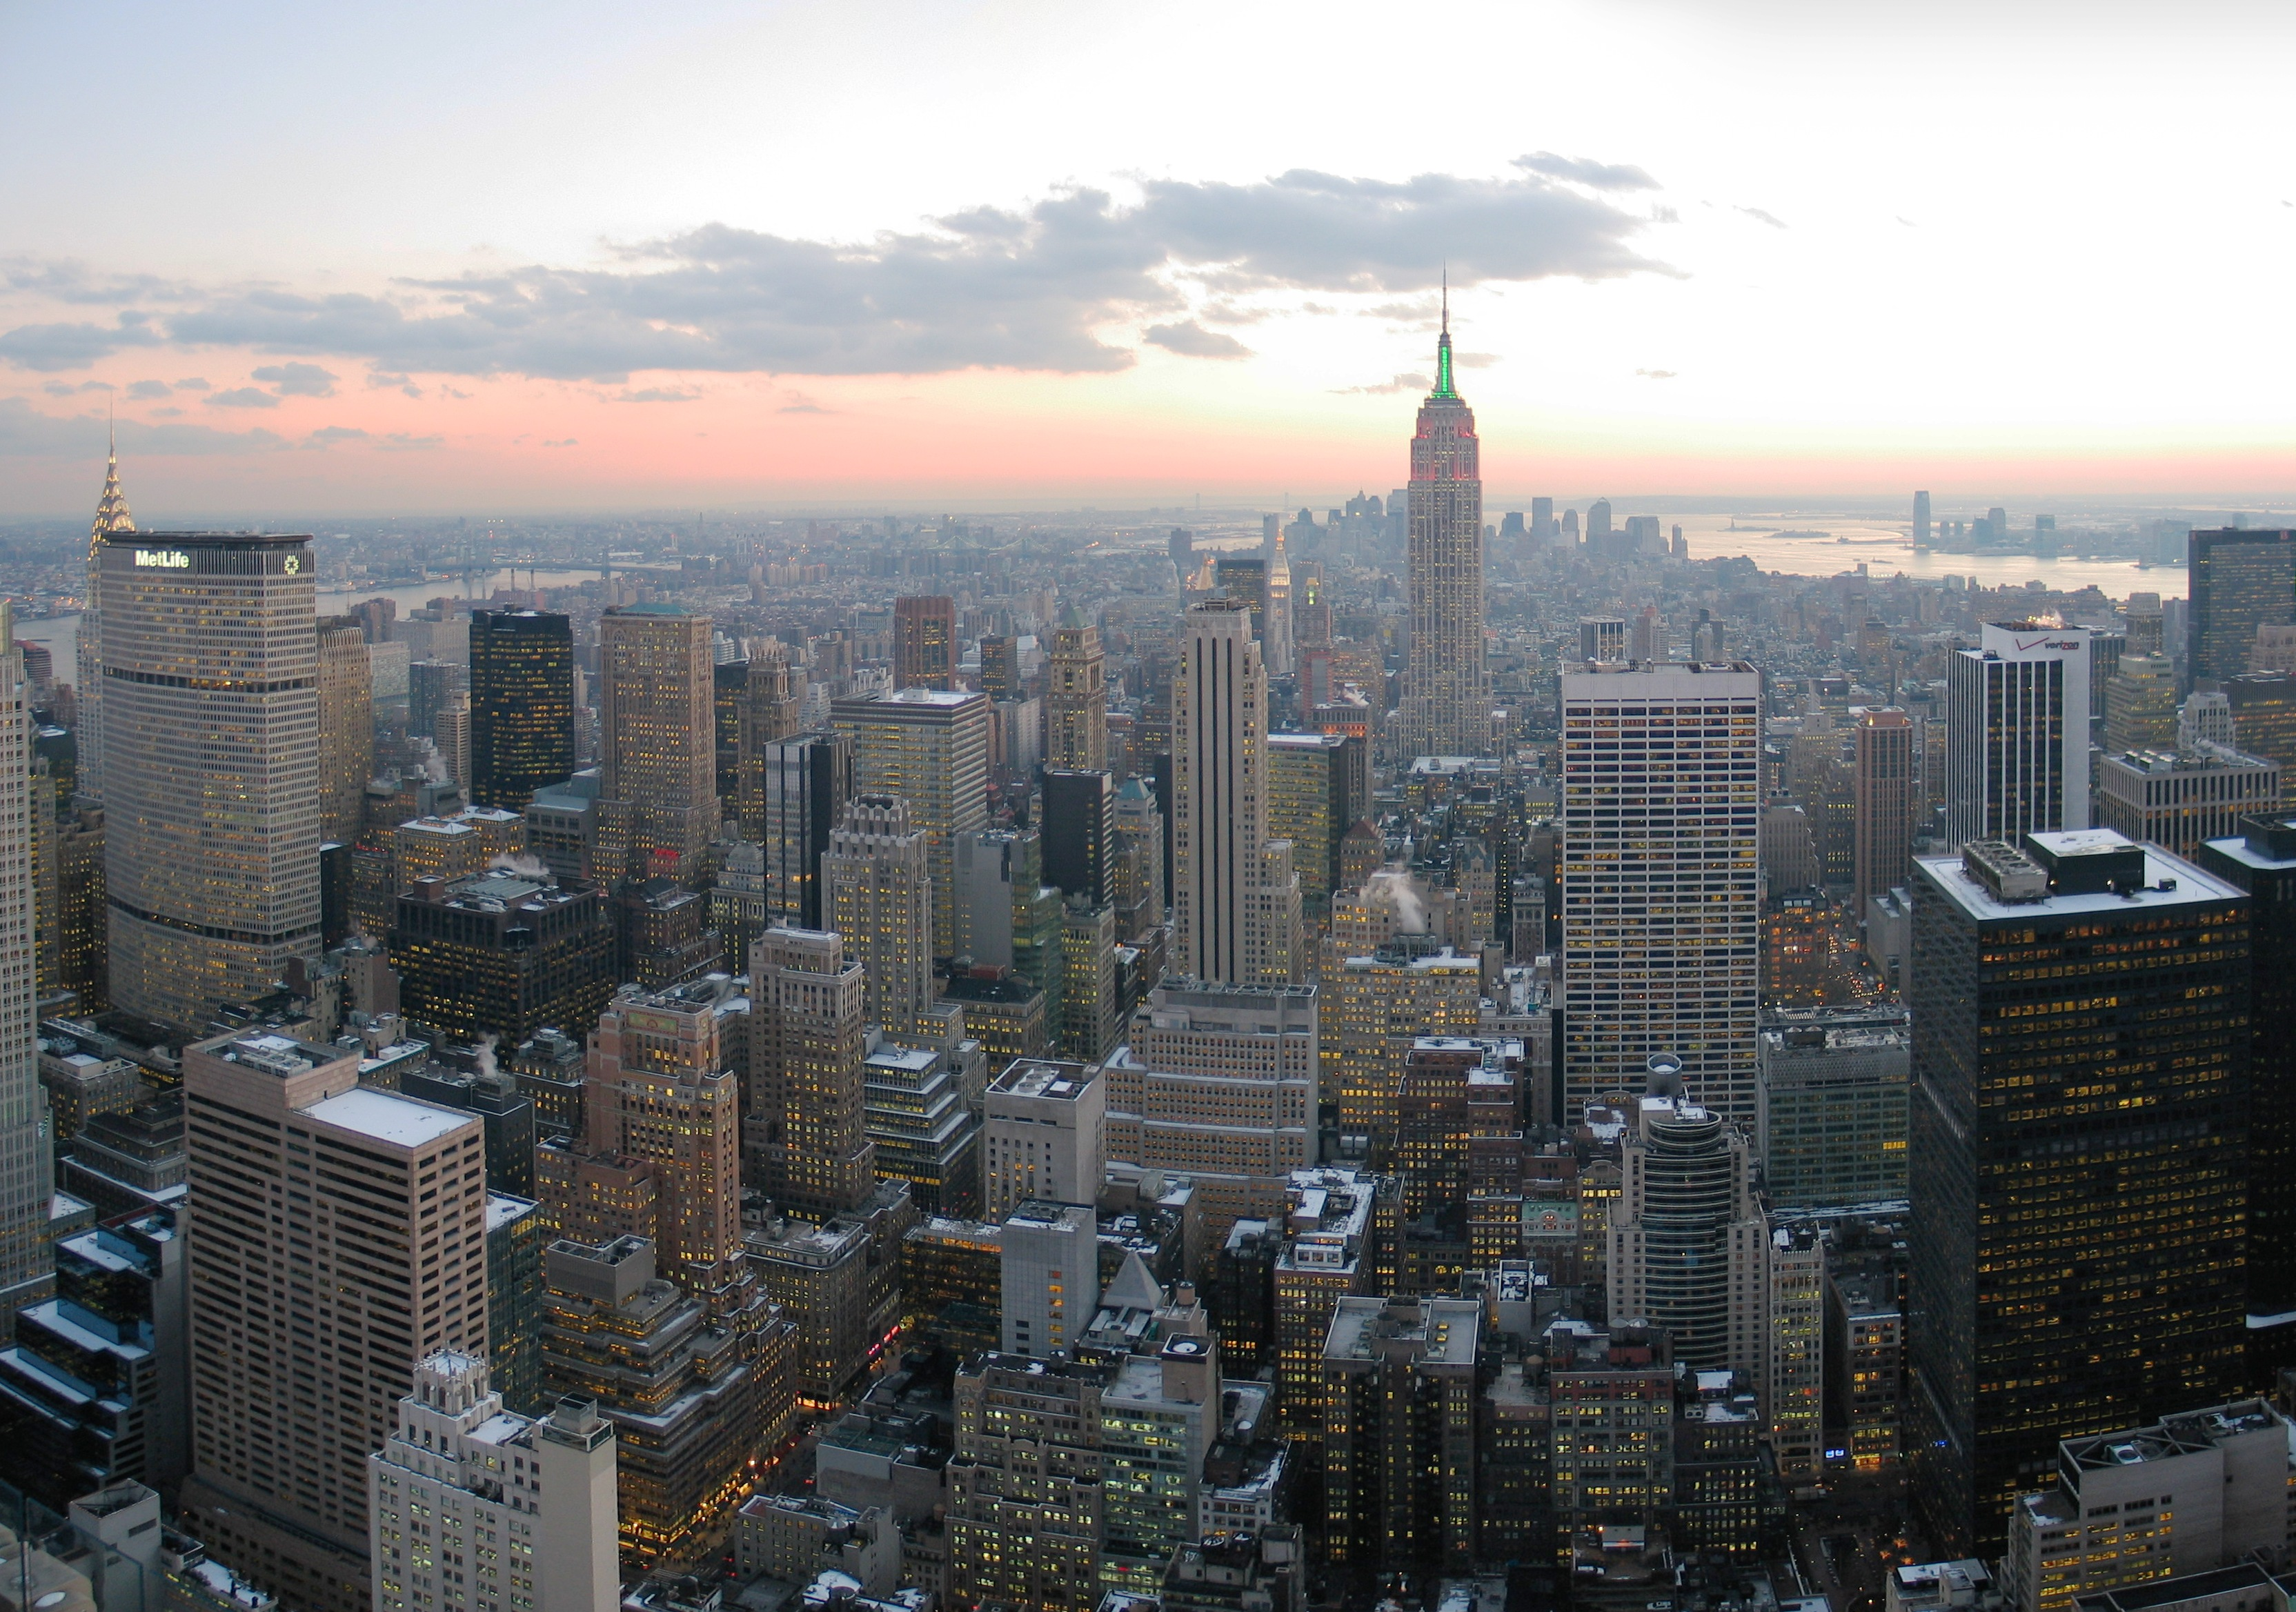 NYC_wideangle_south_from_Top_of_the_Rock.jpg